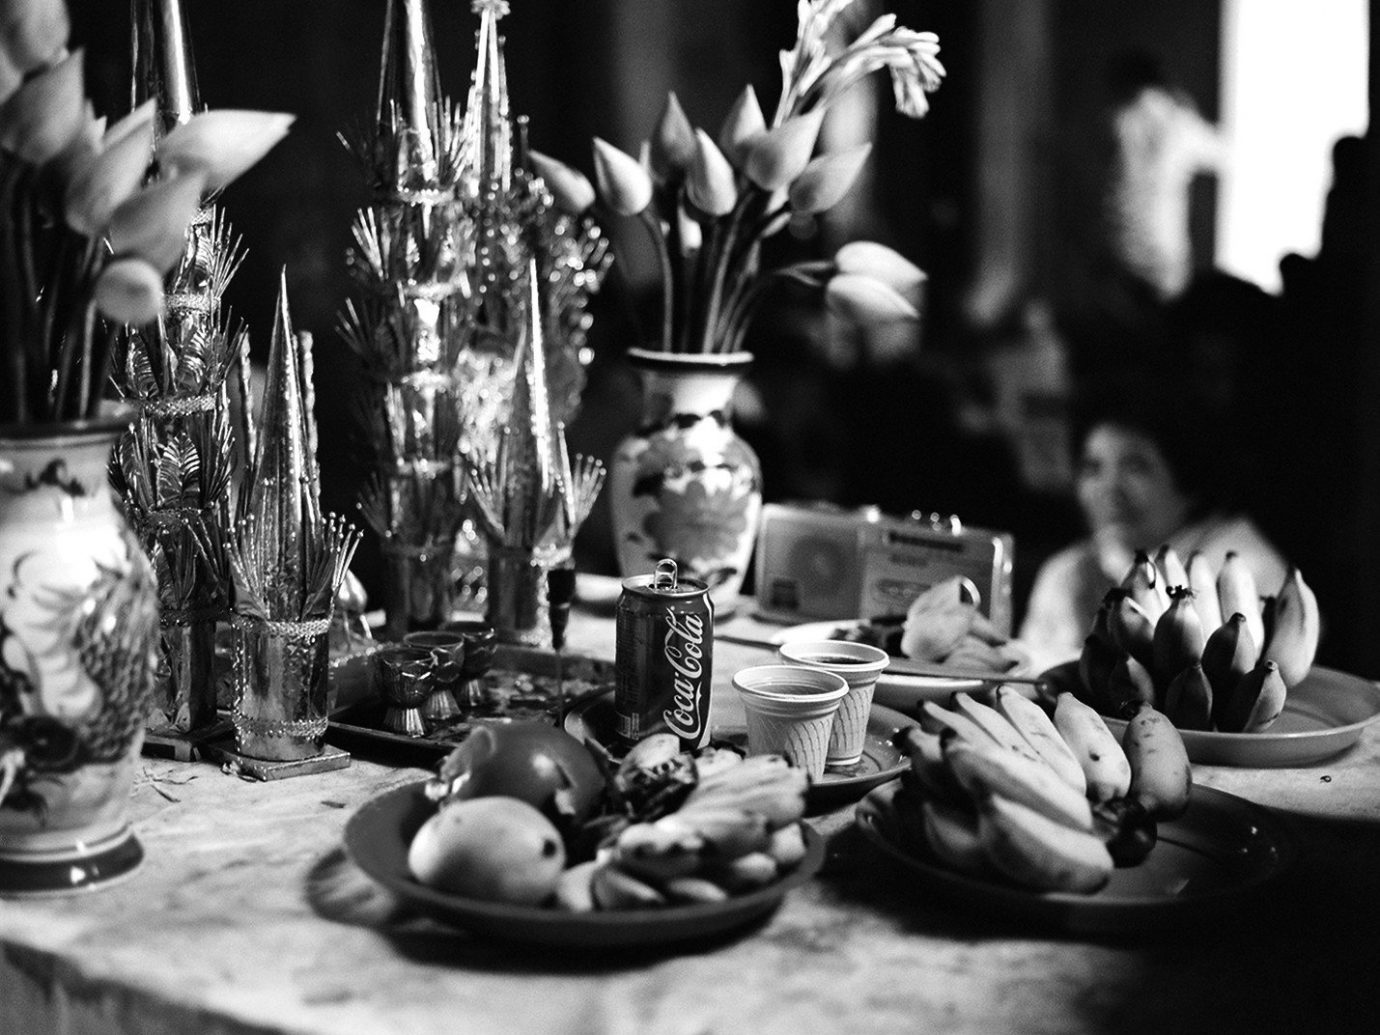 Offbeat table indoor photograph black and white photography monochrome monochrome photography flower set dining table